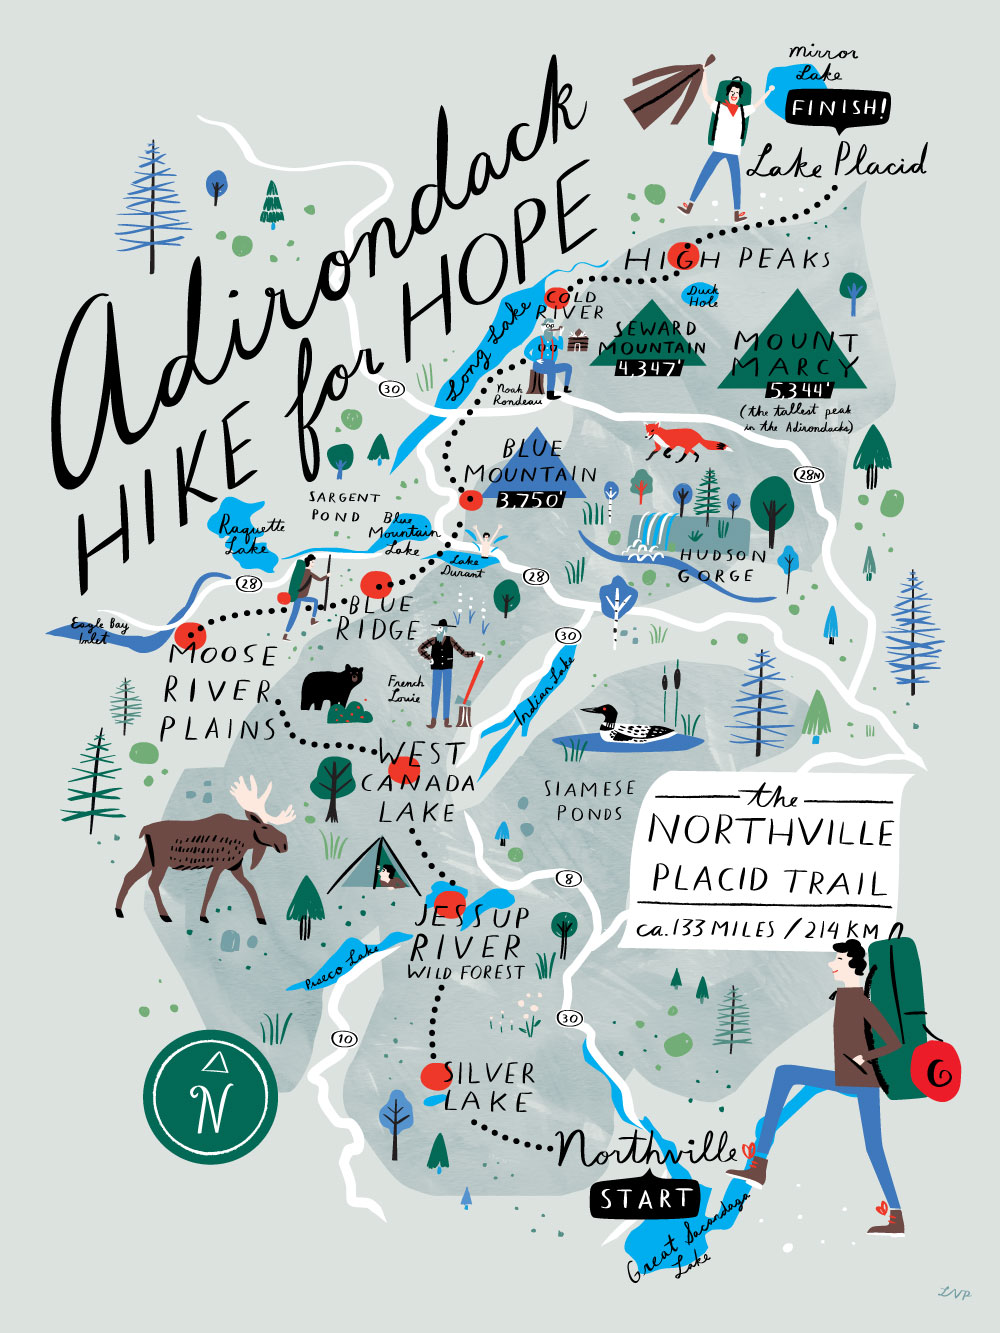 For your donation of $125 we will send you this beautiful poster exclusively designed for ADK Hike for Hope © by Brooklyn-based artist Libby VanderPloeg. The poster measures 16 x 20 inches and is ink jet printed on matte paper .008 stock. More work by Libby  HERE .